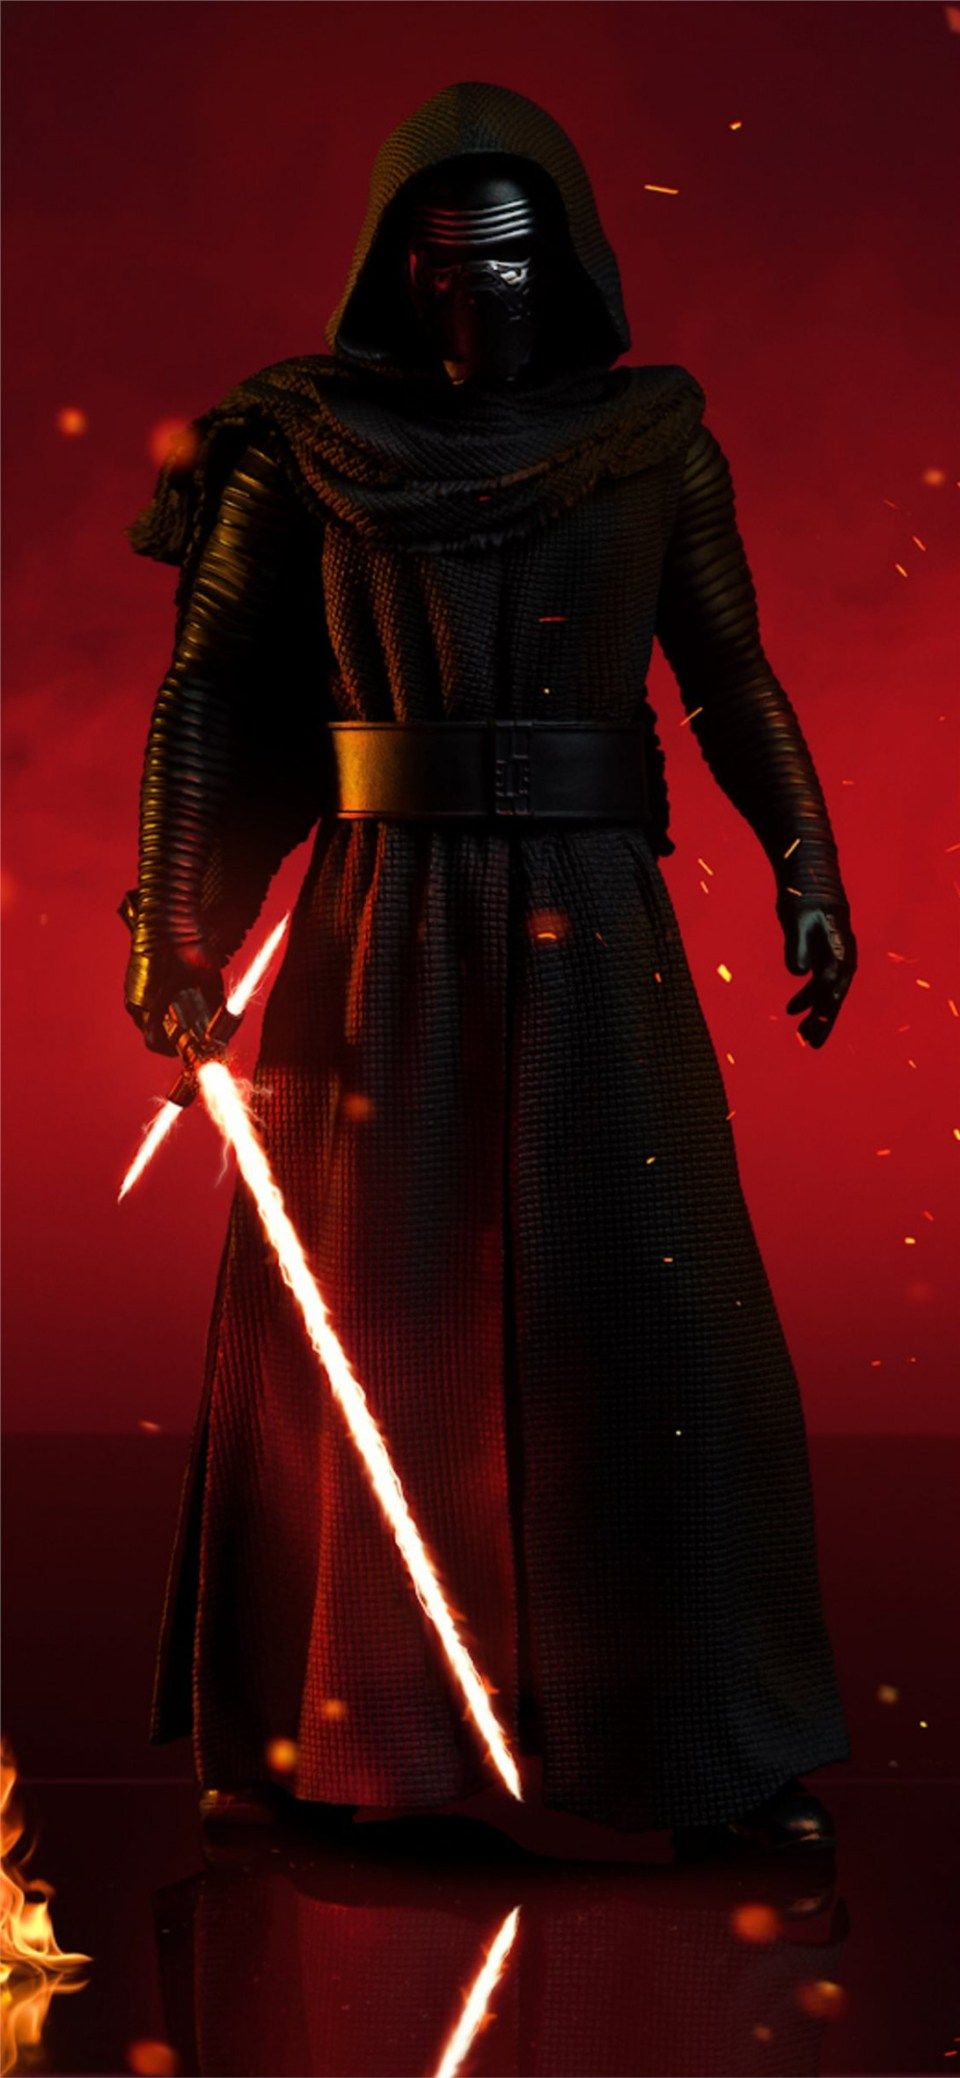 How To Get People To Like Comic Book Wallpapers Kylo Ren Wallpaper Comic Book Wallpaper Kylo Ren